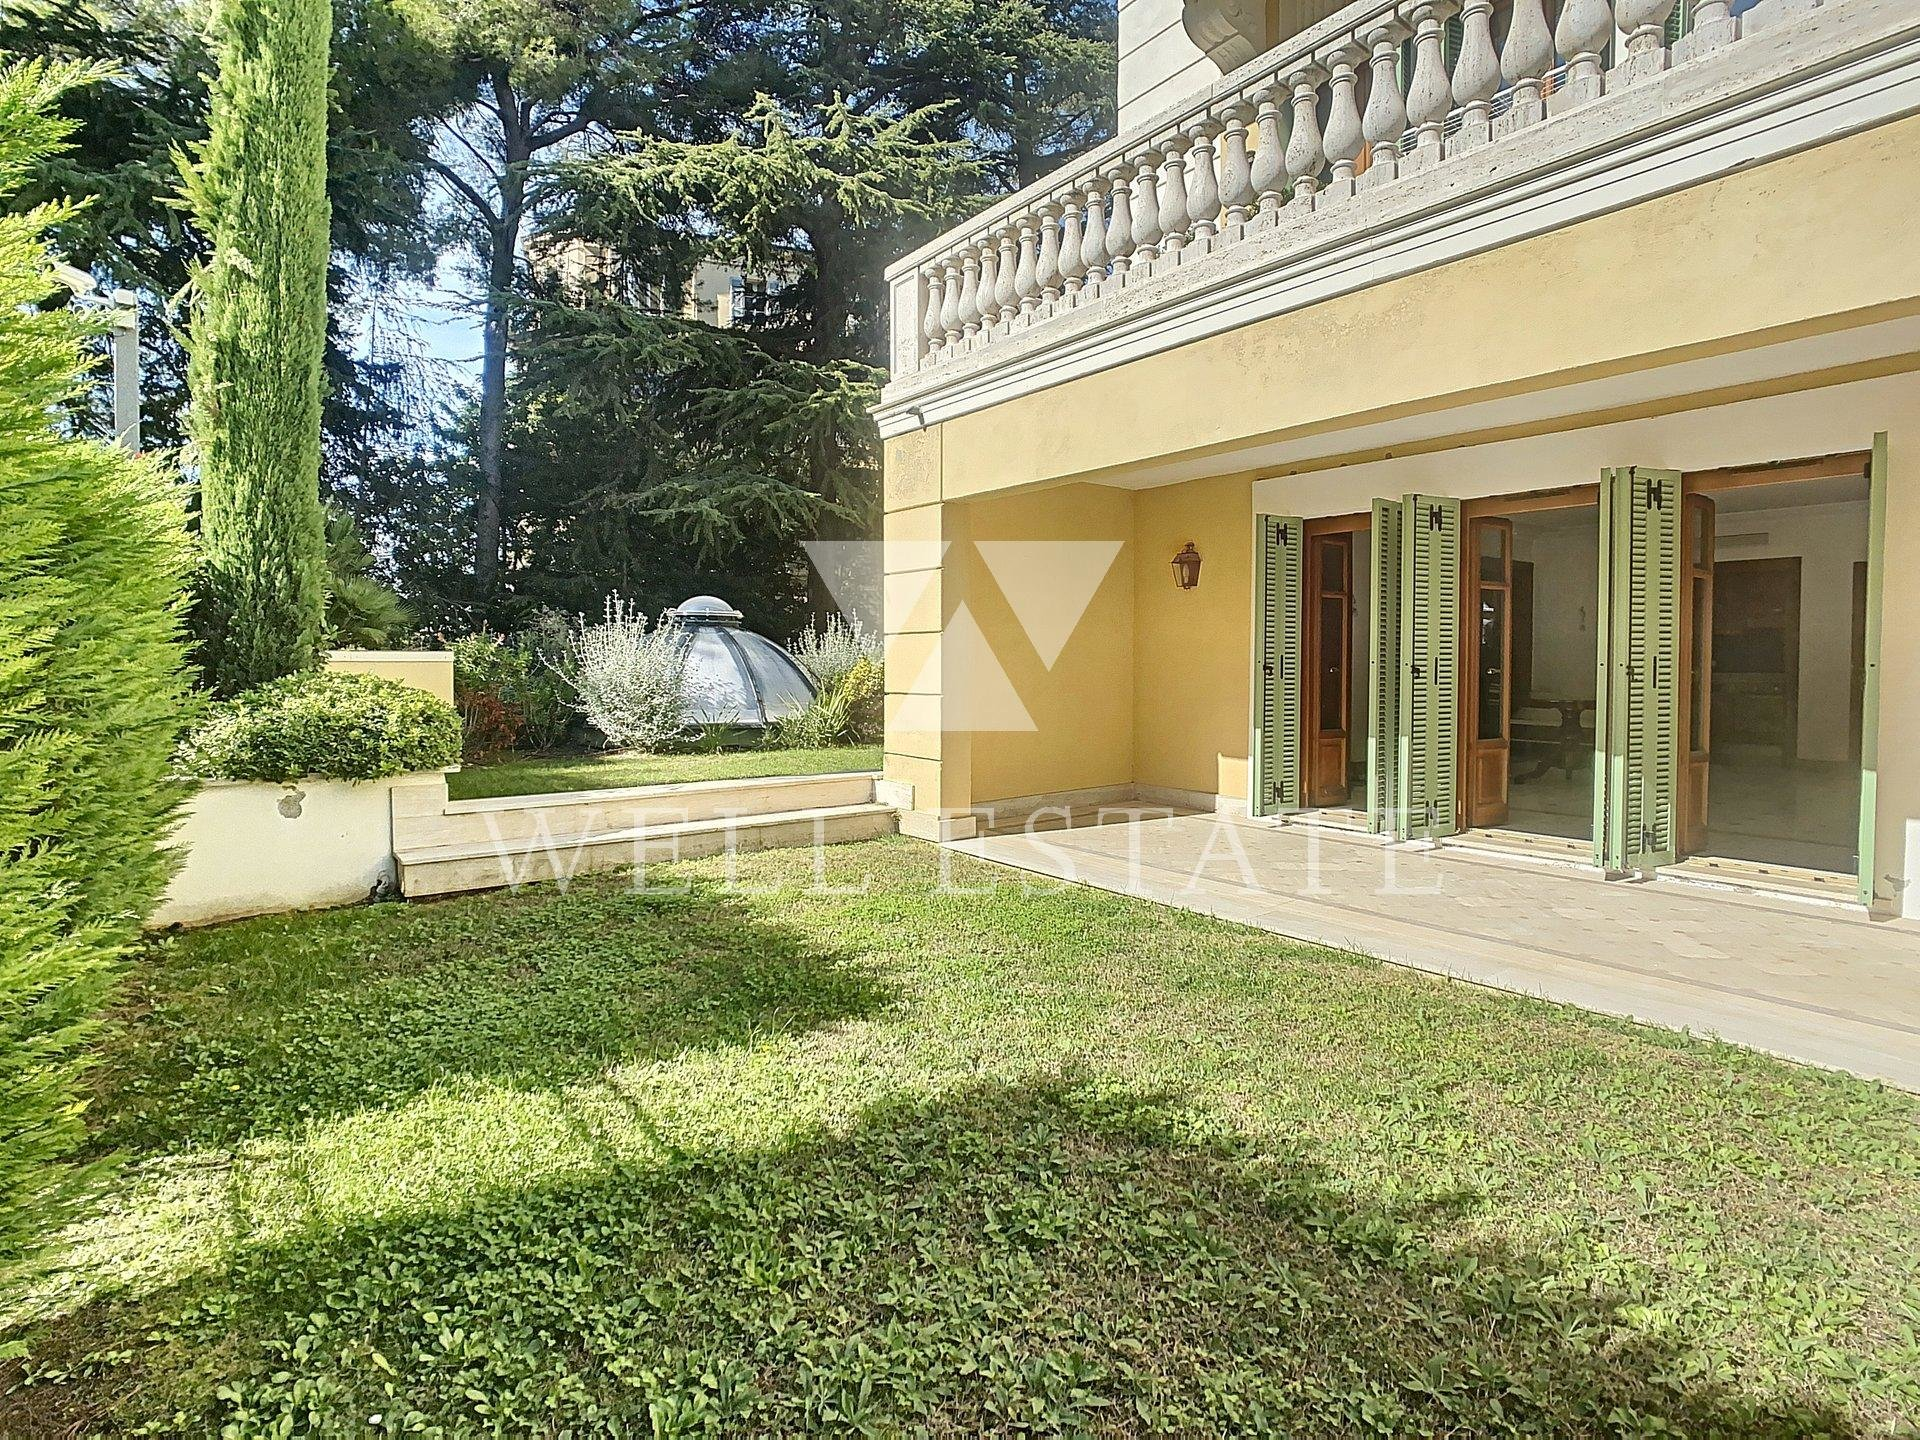 CANNES OXFORD 1 BEDROOM APARTMENT 58M2 WITH TERRACE AND PRIVATE GARDEN